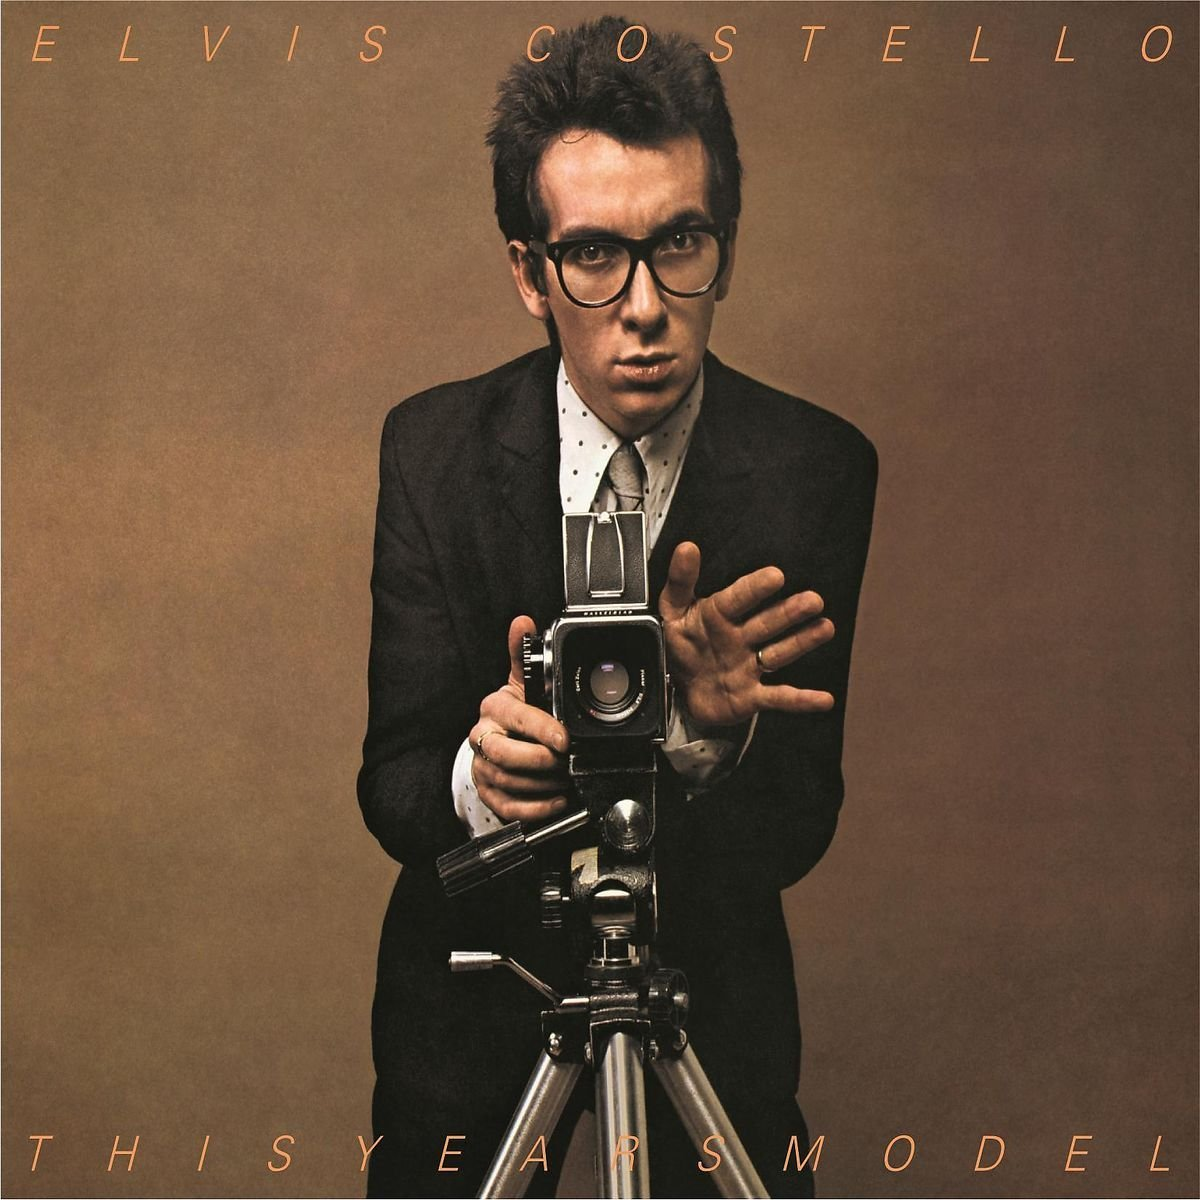 top 100 punk albums Elvis Costello This Year's Model review